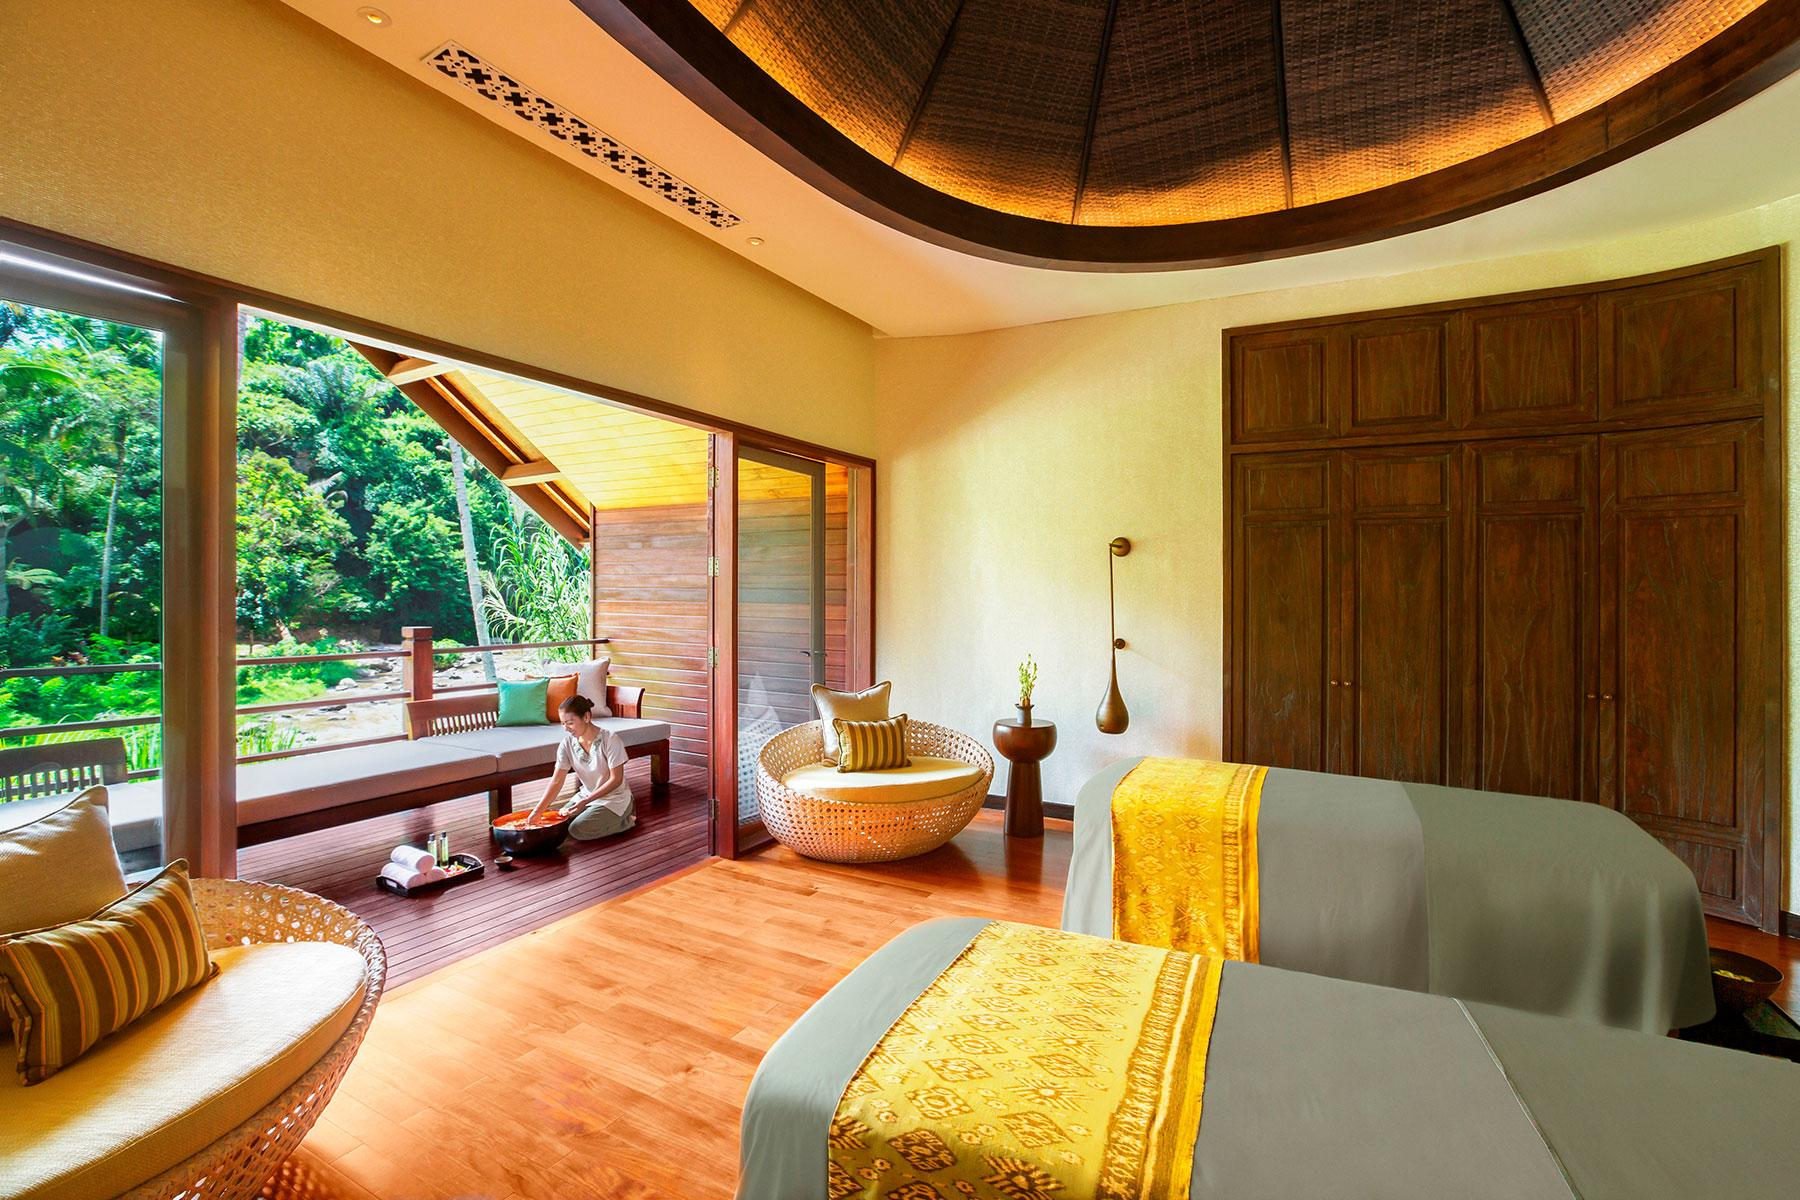 Bizarre-Spa-Balinese-Heal-Touch-1